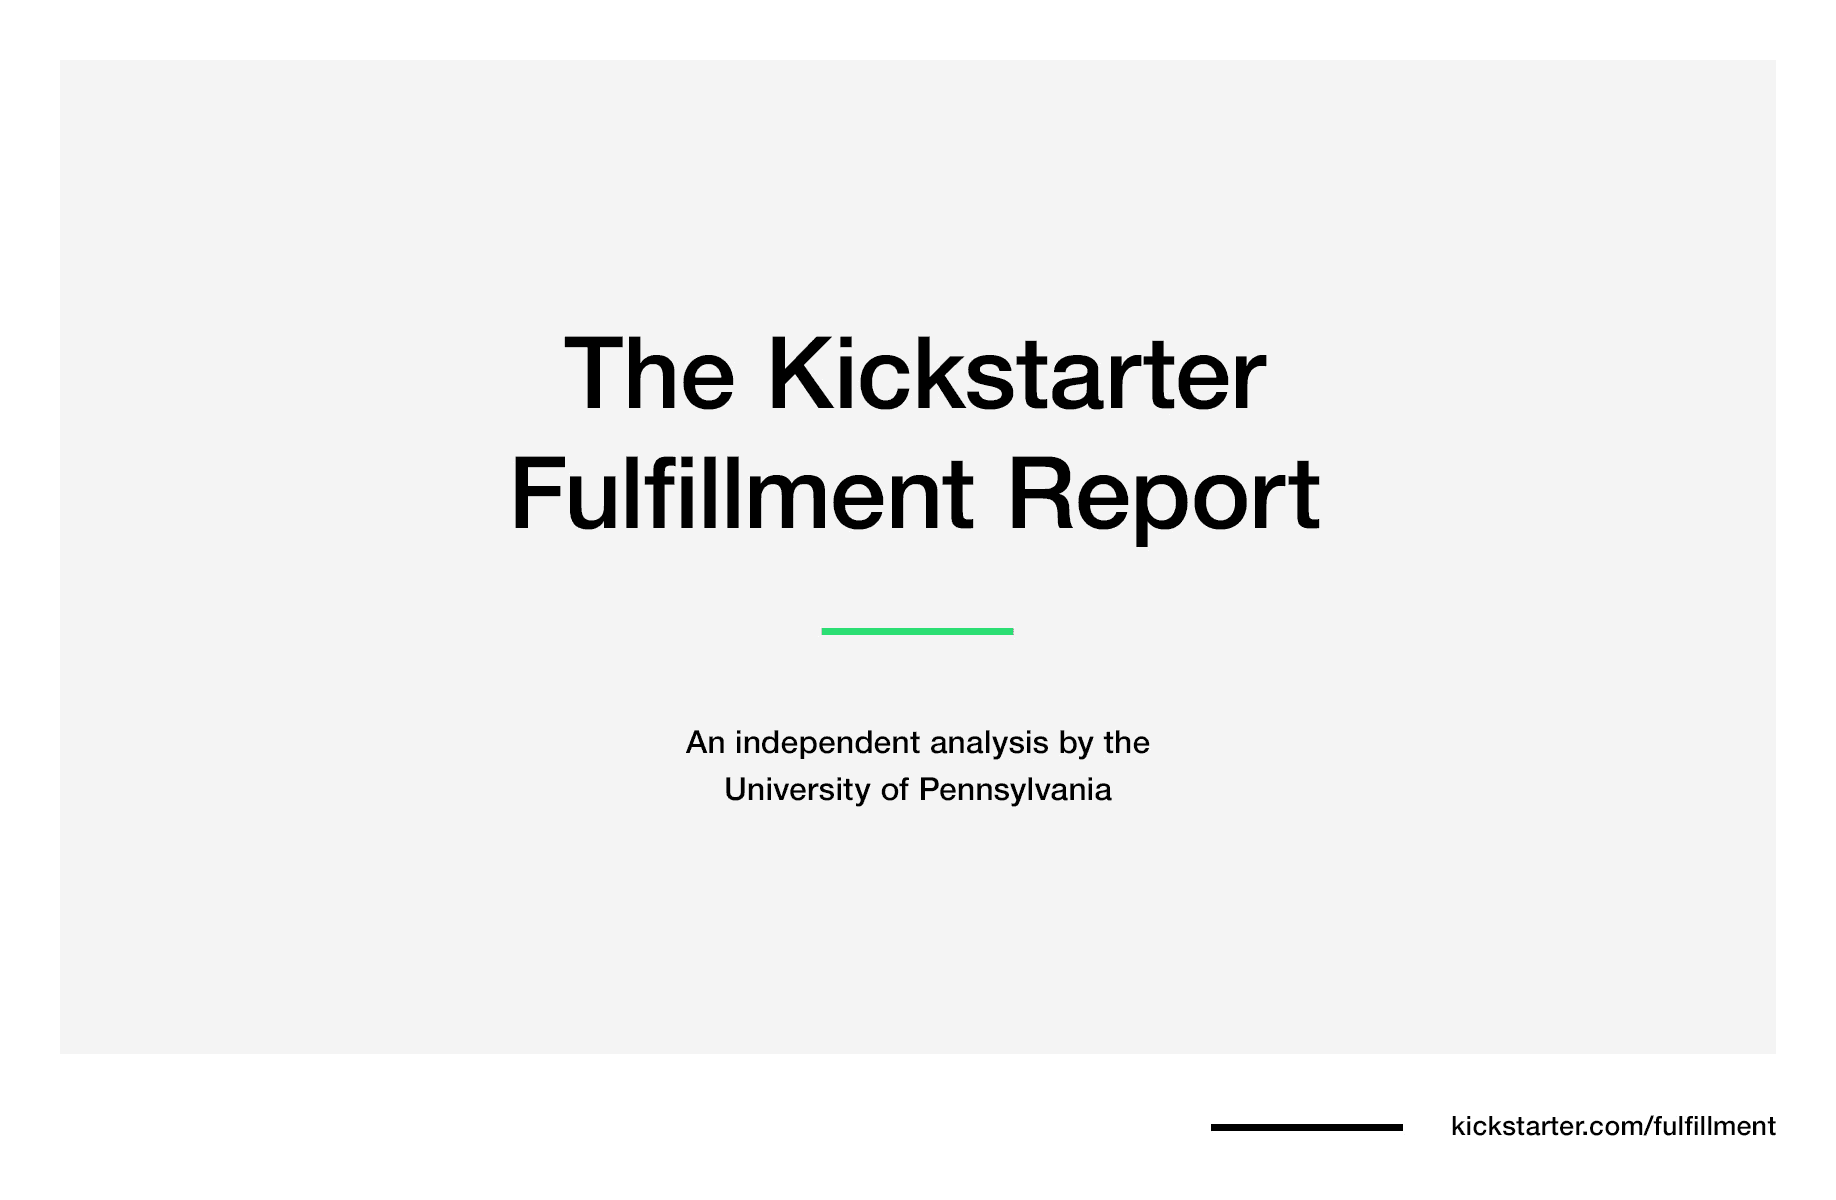 Kickstarter Fulfillment Report — Kickstarter